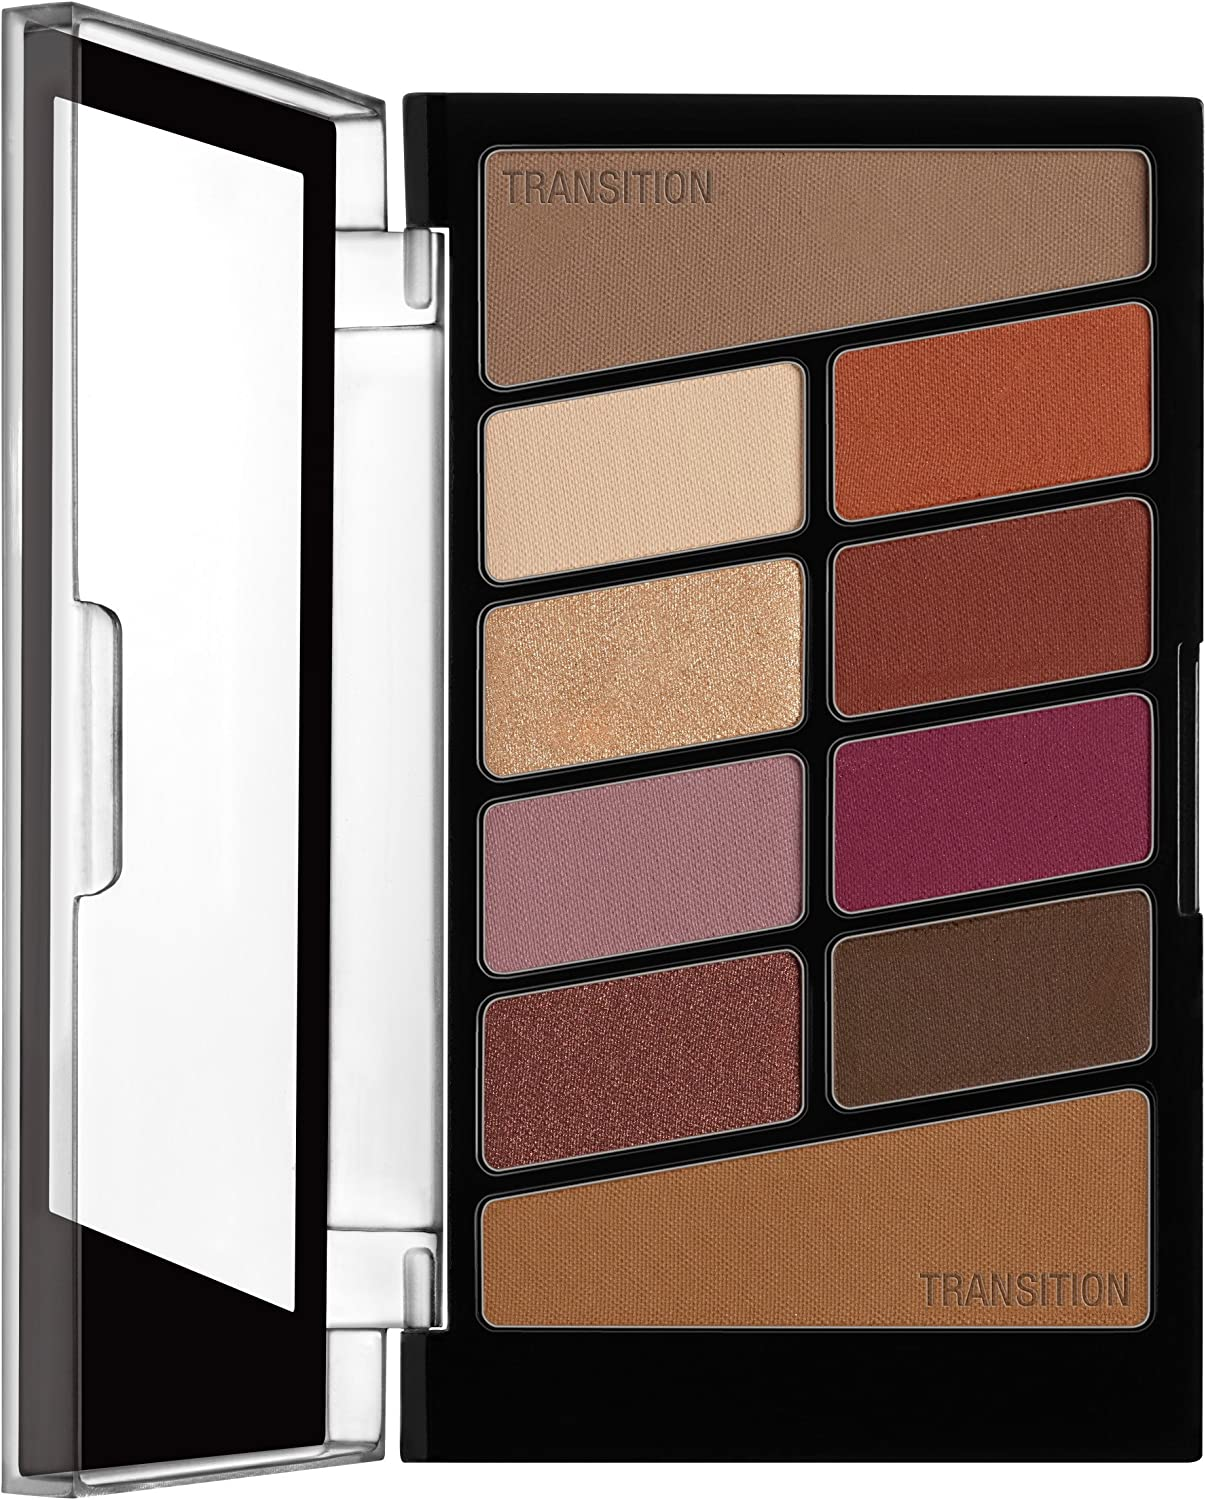 WET N WILD Color Icon Eyeshadow 10 Pan Palette - Ros? In The Air:  Amazon.co.uk: Beauty